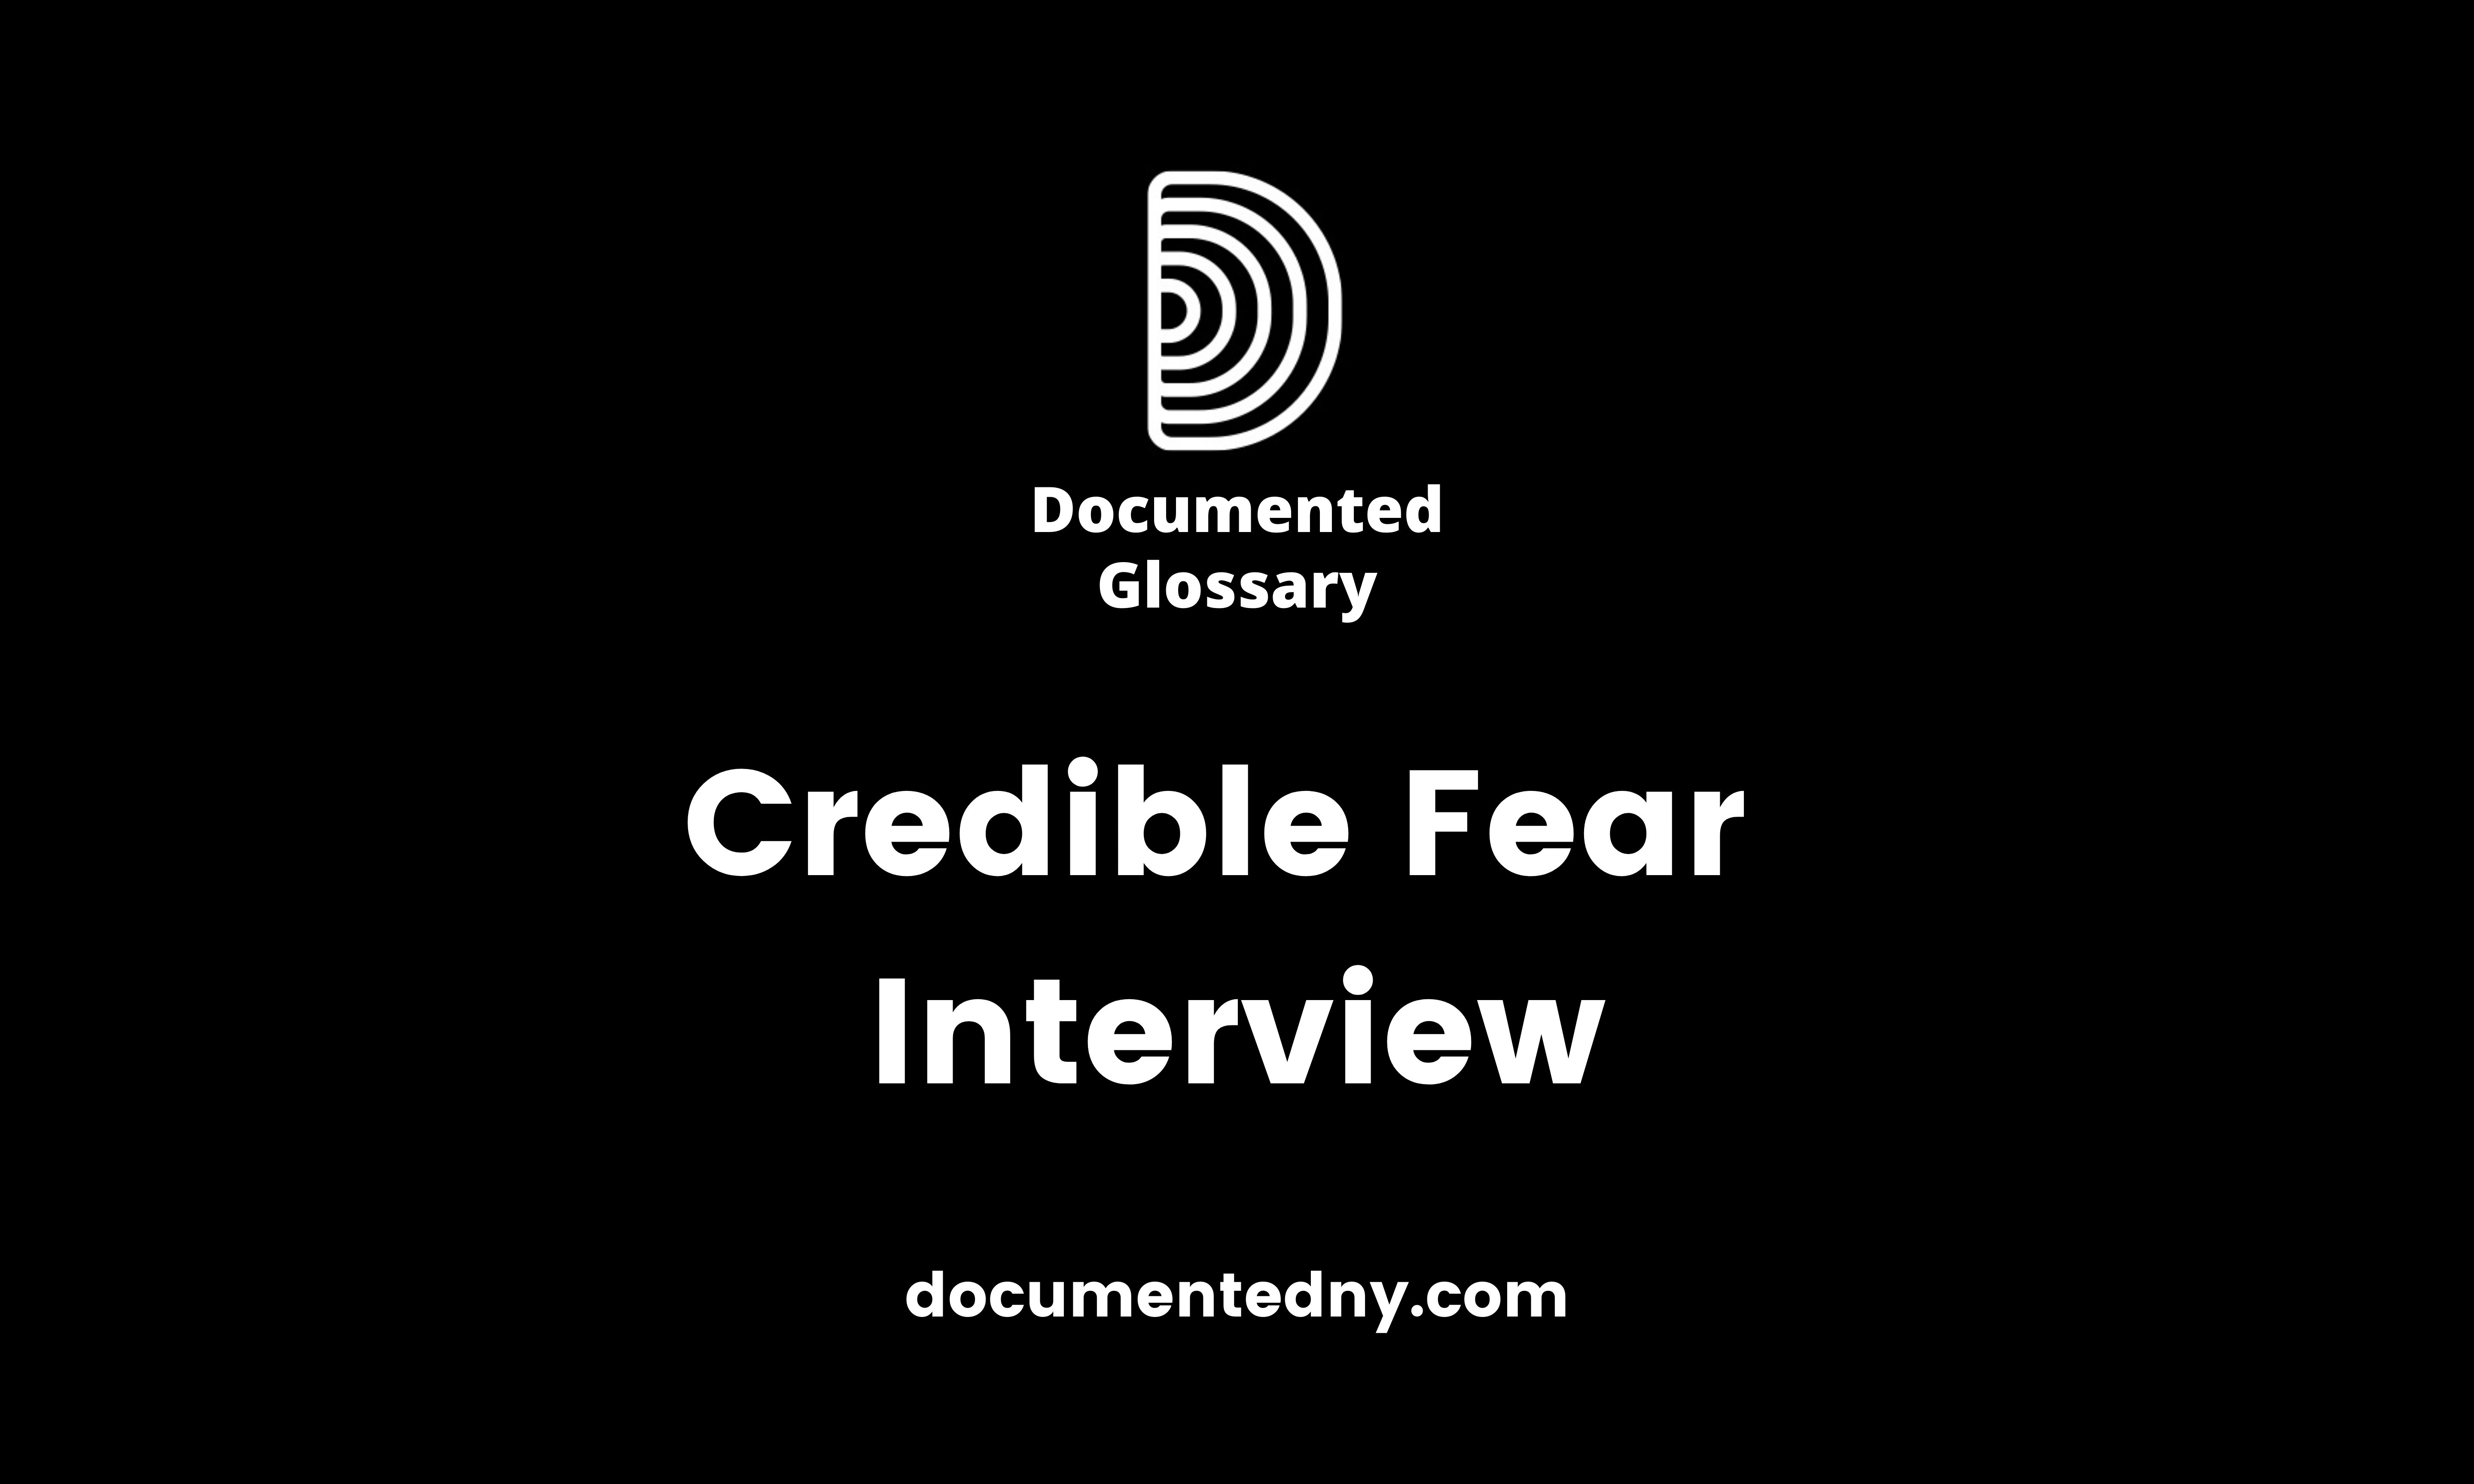 """As a part of the asylum request process, applicants are subject to a """"credible fear interview"""" with an asylum officer."""